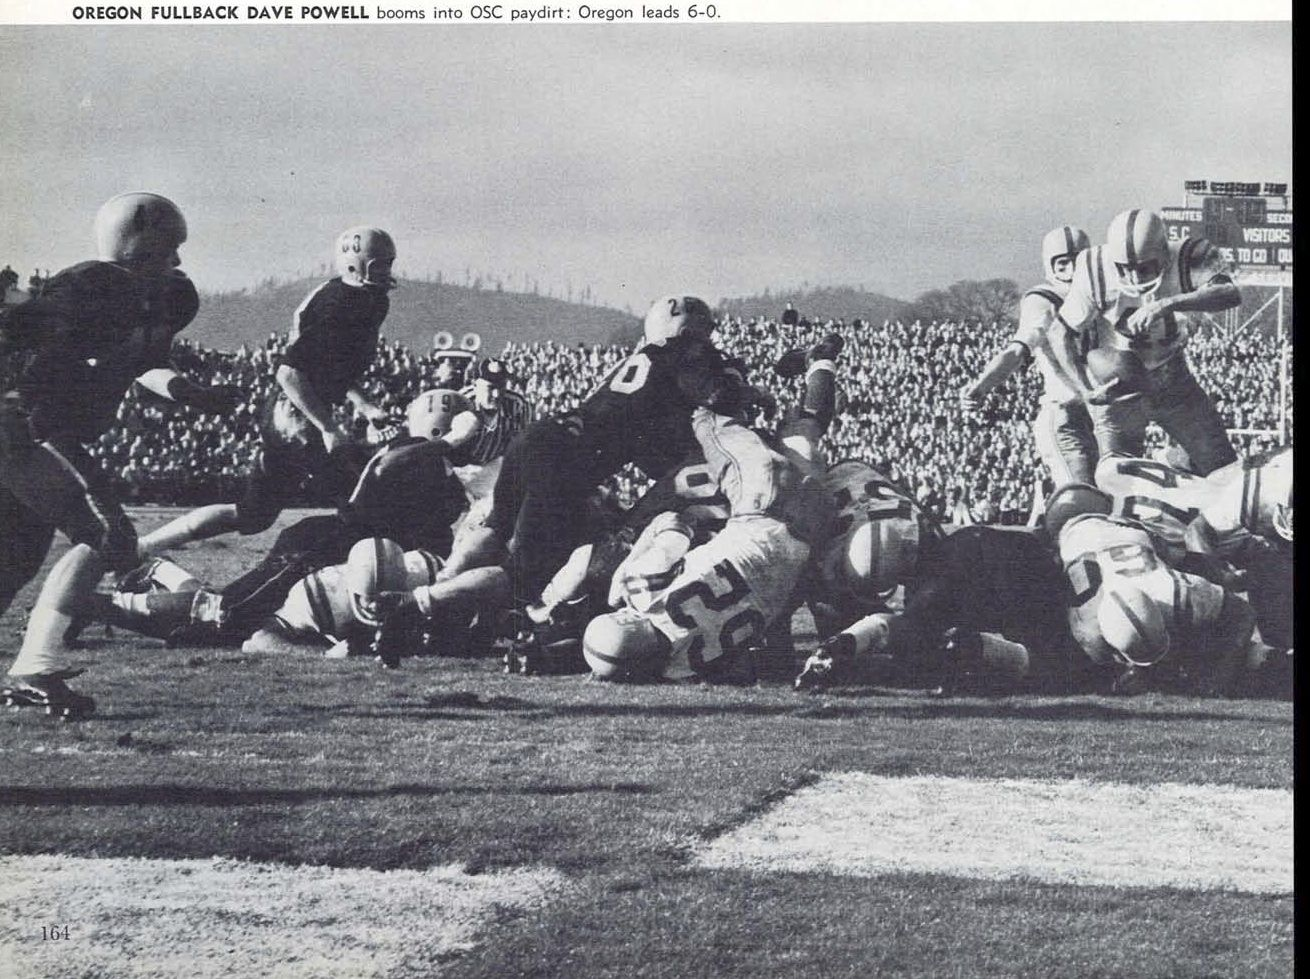 Oregon Fullback Dave Powell Scores A Touchdown Vs Oregon State In 1958 In Corvallis From The 1959 Oregana Univer University Of Oregon Oregon State Corvallis